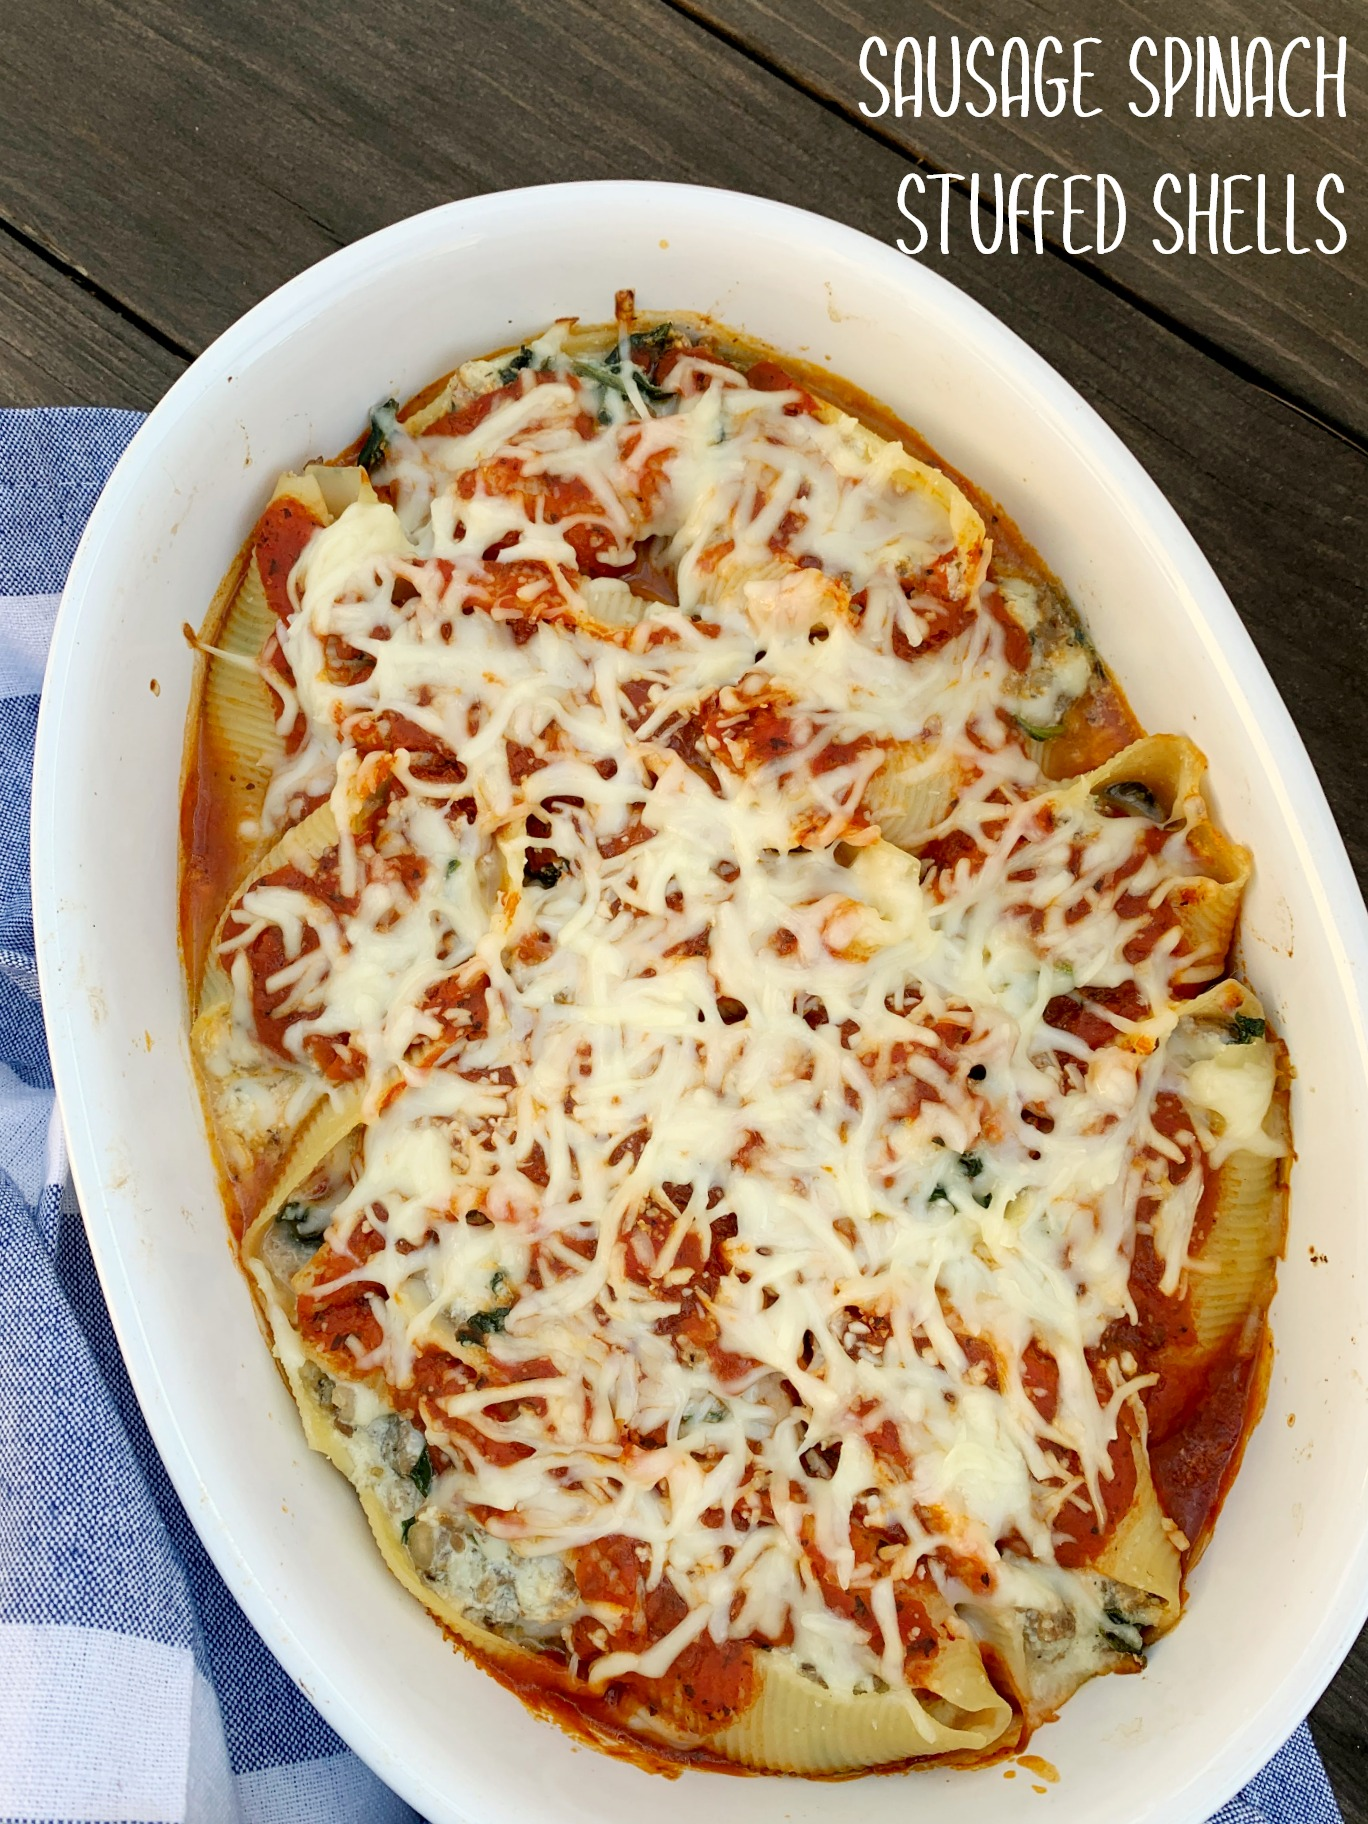 white oval dish with stuffed shells after baking